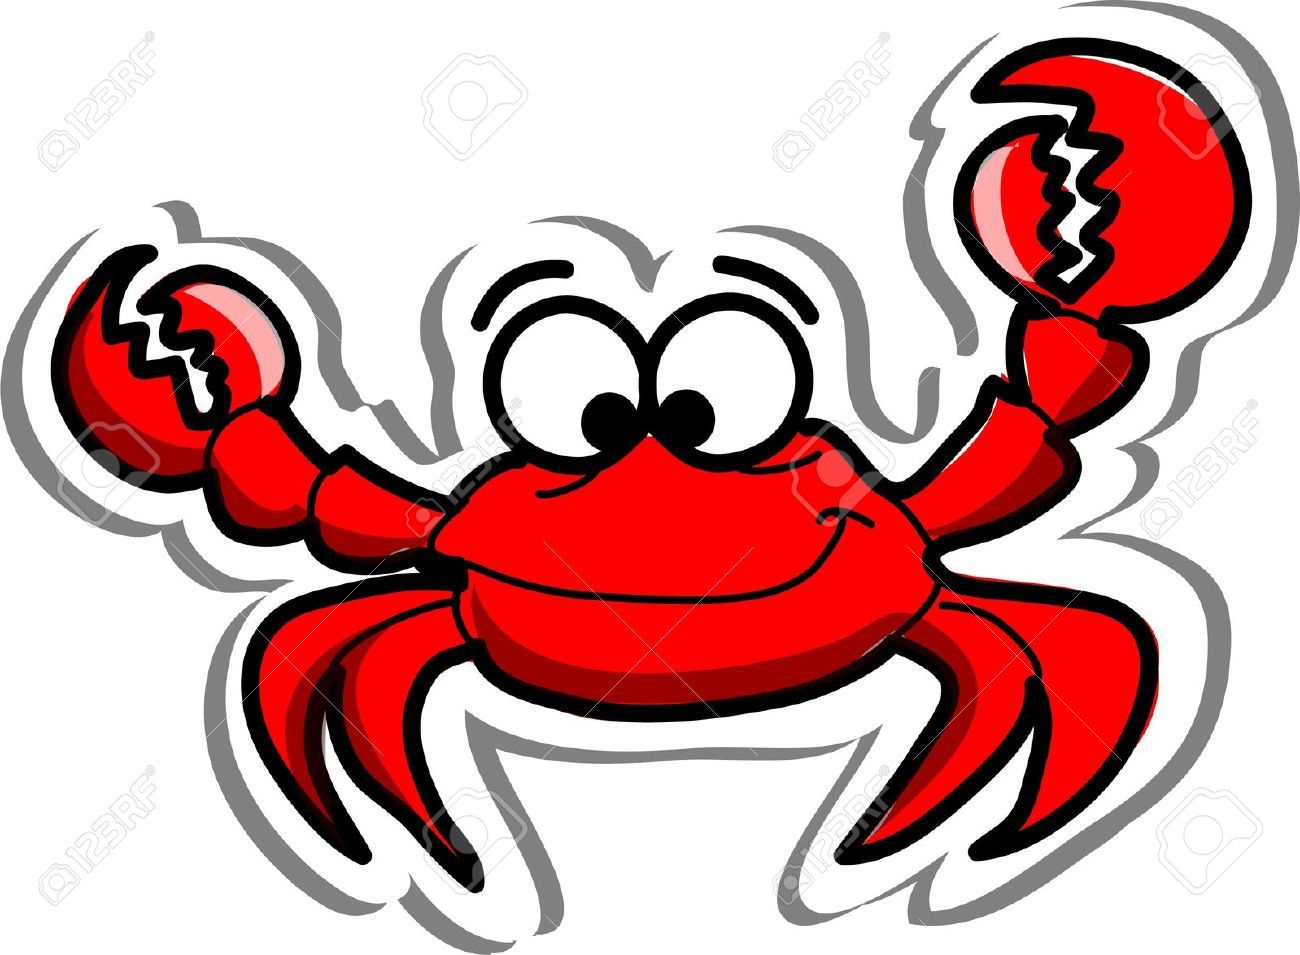 Crabs Stock Illustrations, Cliparts And Royalty Free Crabs.